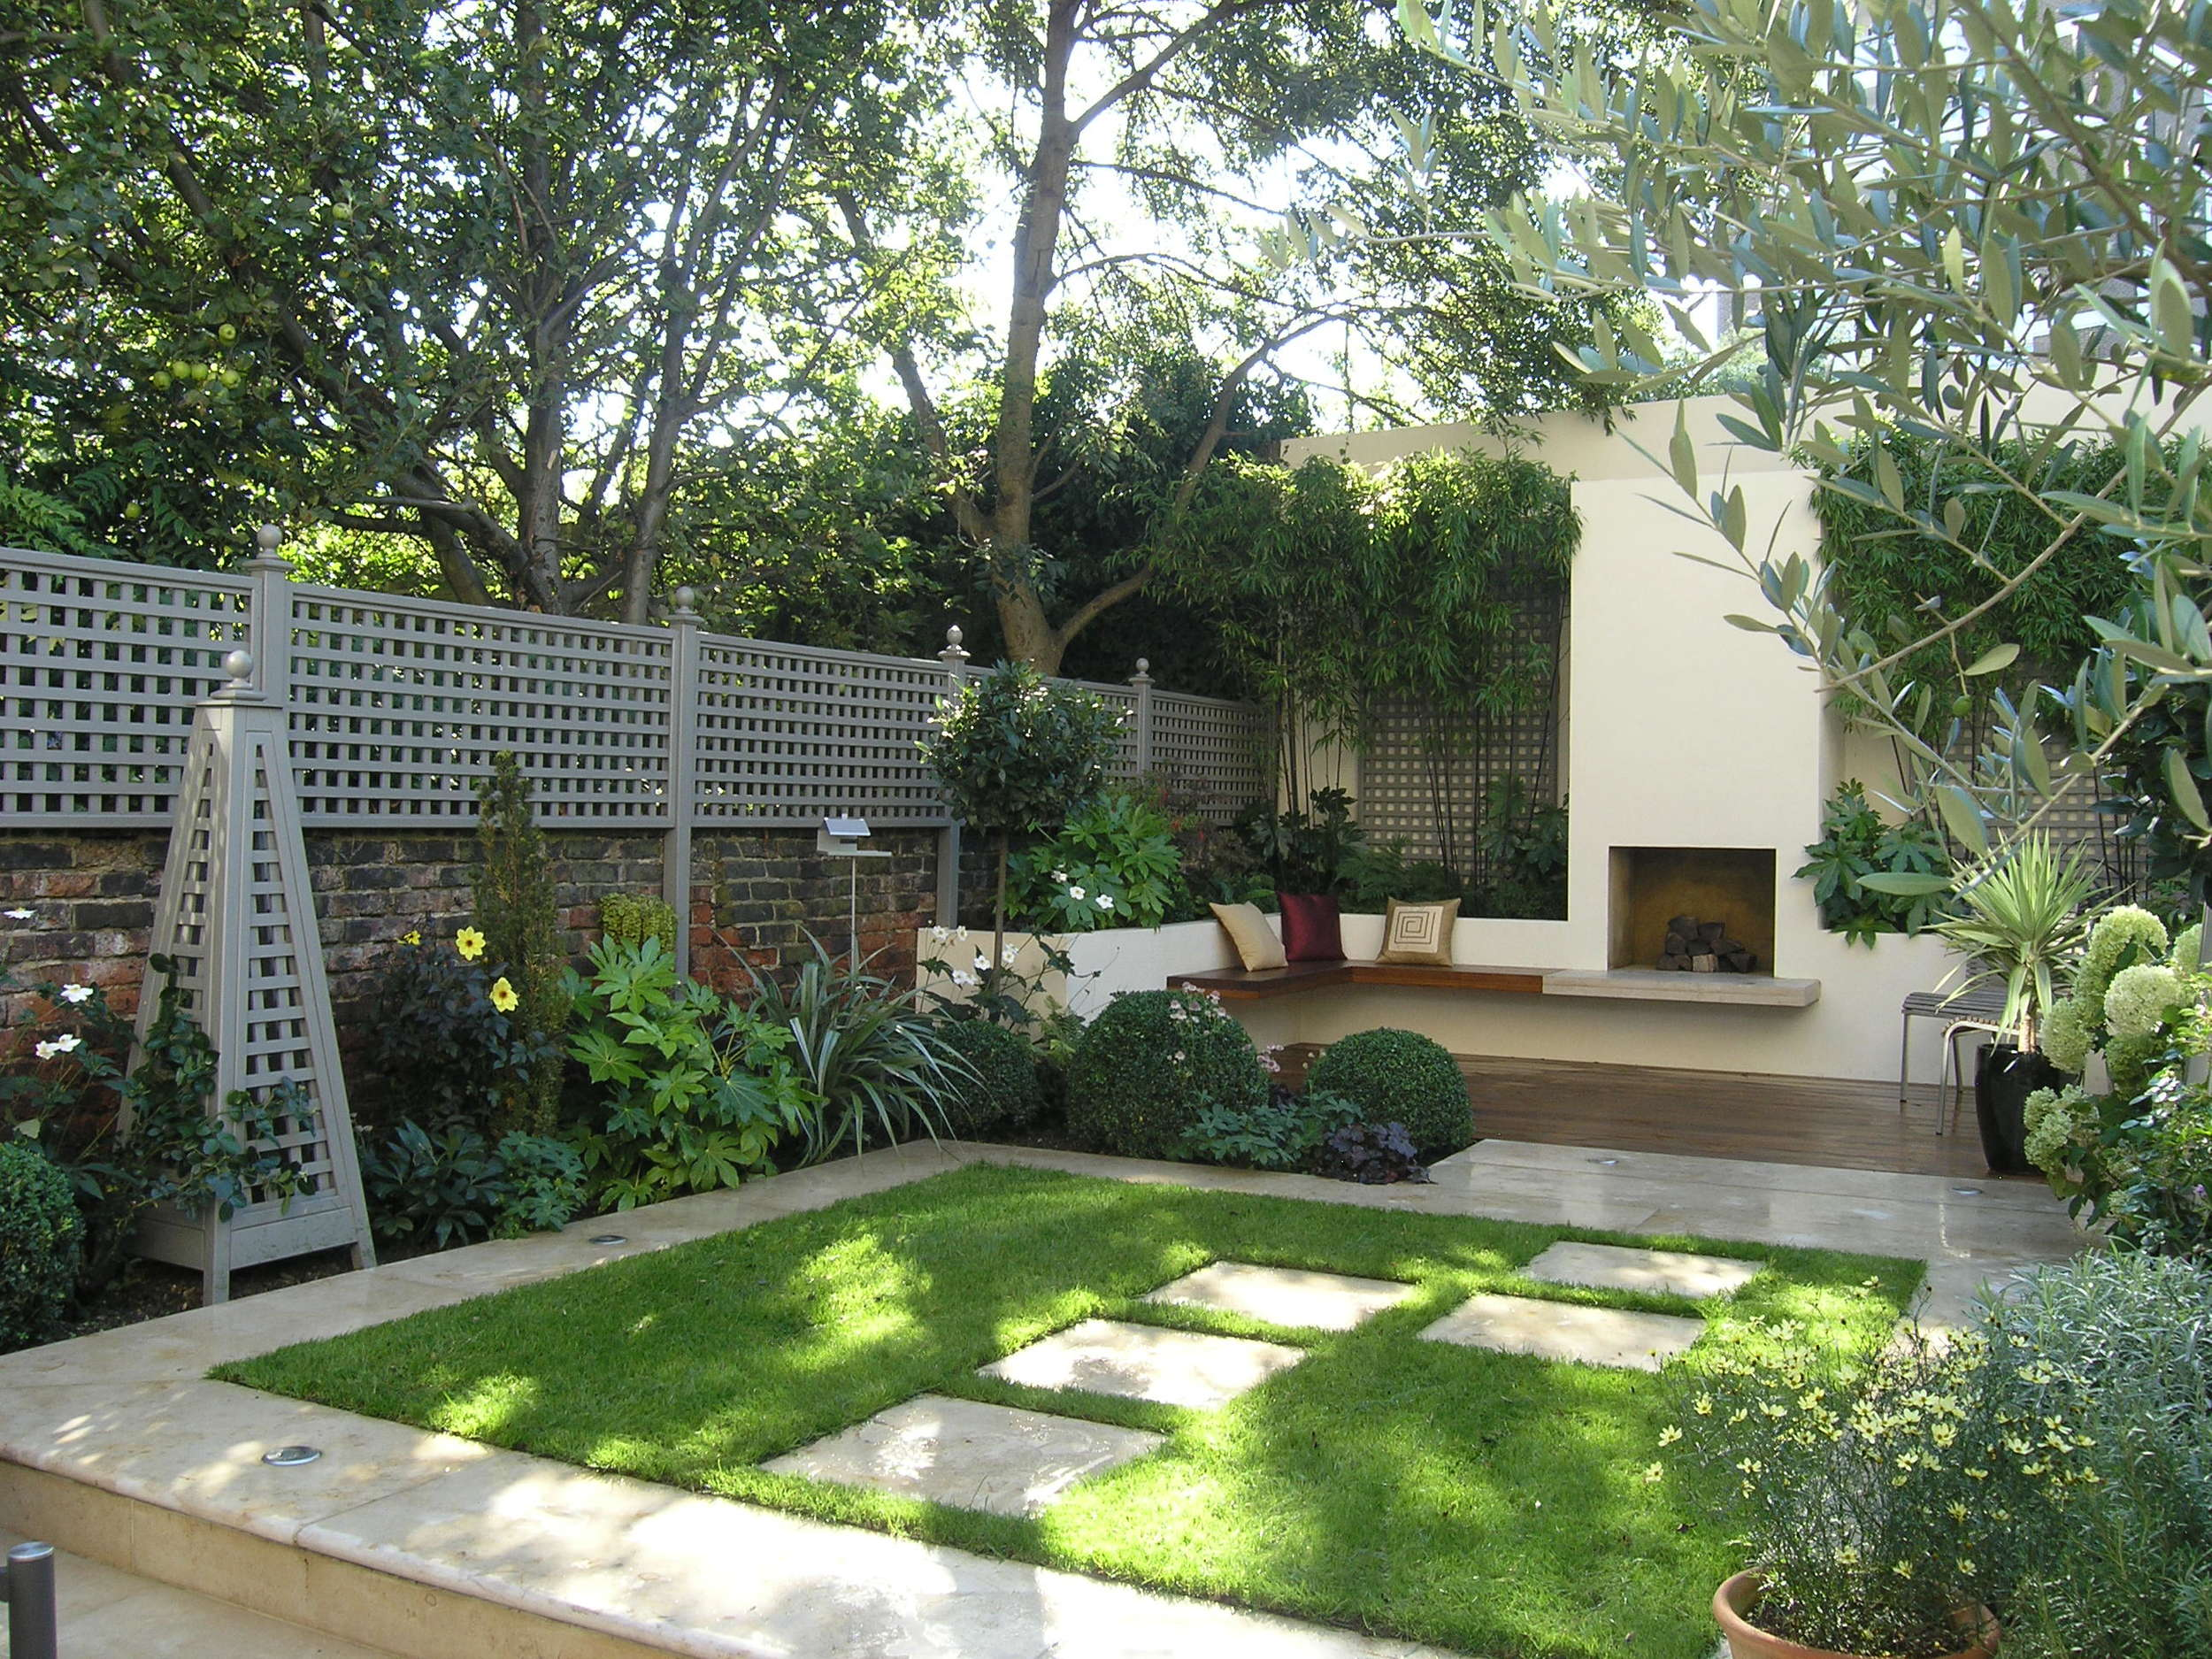 Small Area Garden Design Ideas